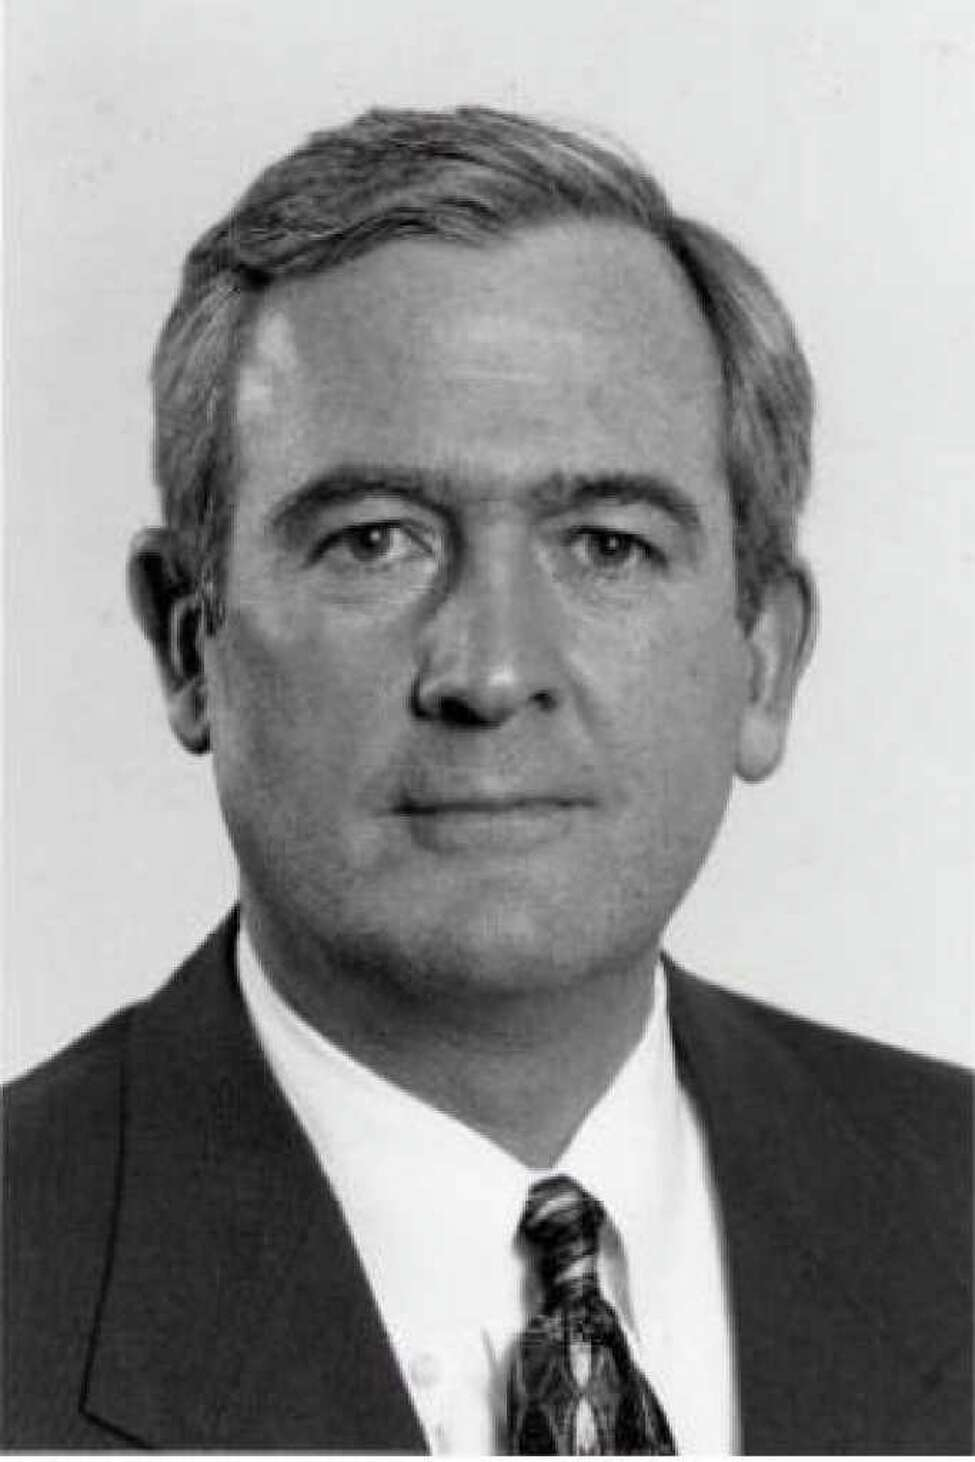 Robert R. Snashall, former chairman of the New York state Workers' Compensation Board, was appointed by Gov. George Pataki.